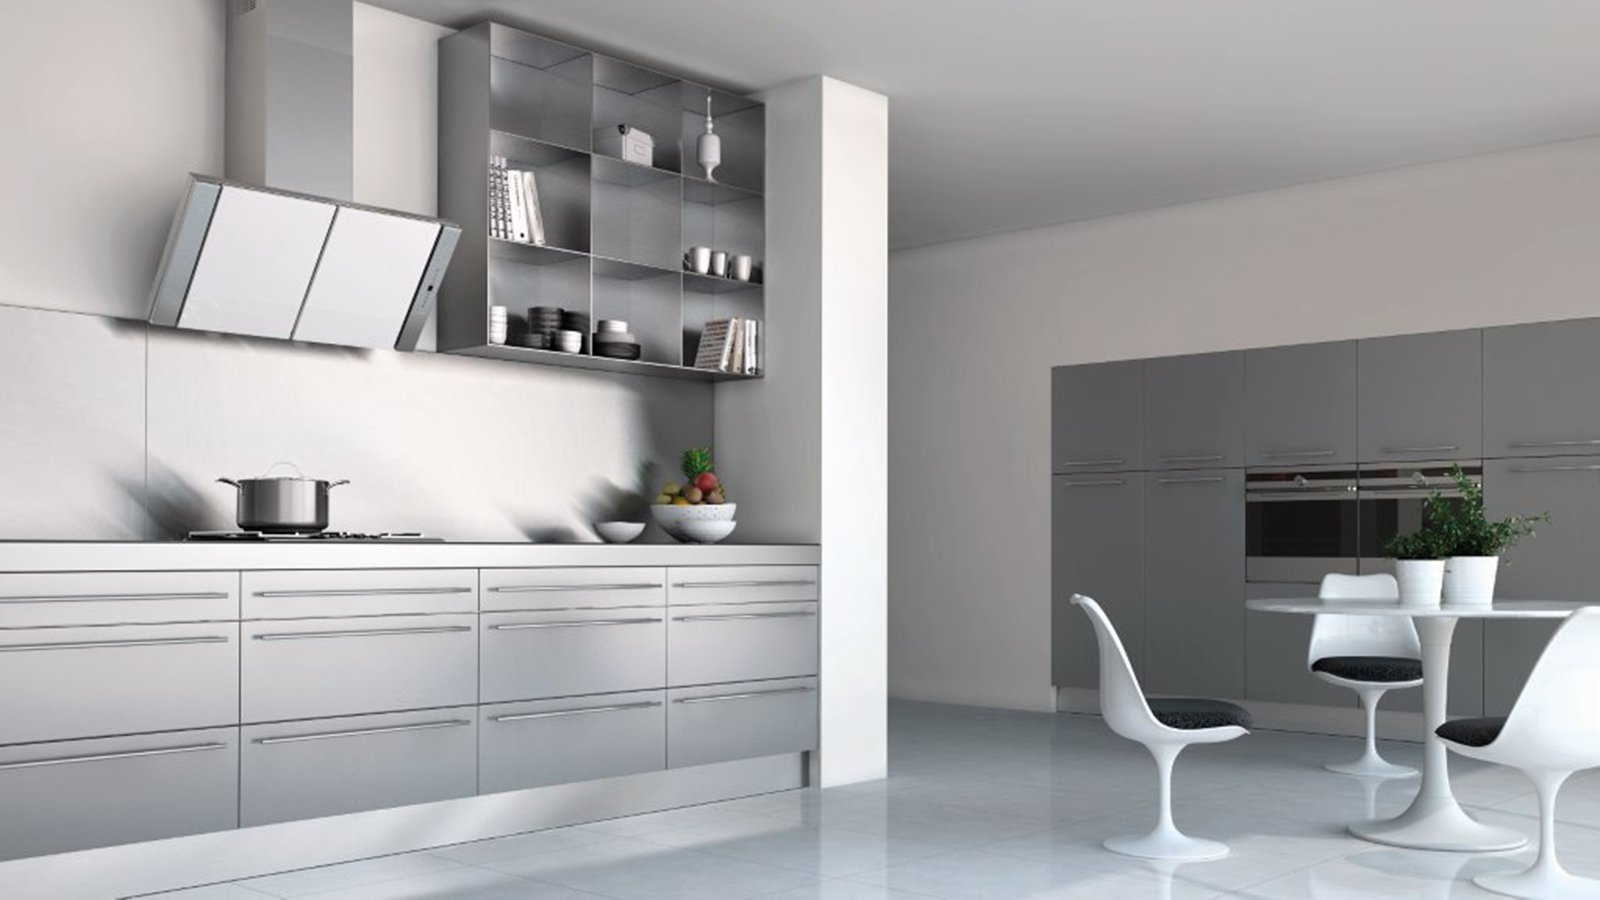 Cappe cucine moderne cappe w with cappe cucine moderne for Cappe per cucina ikea